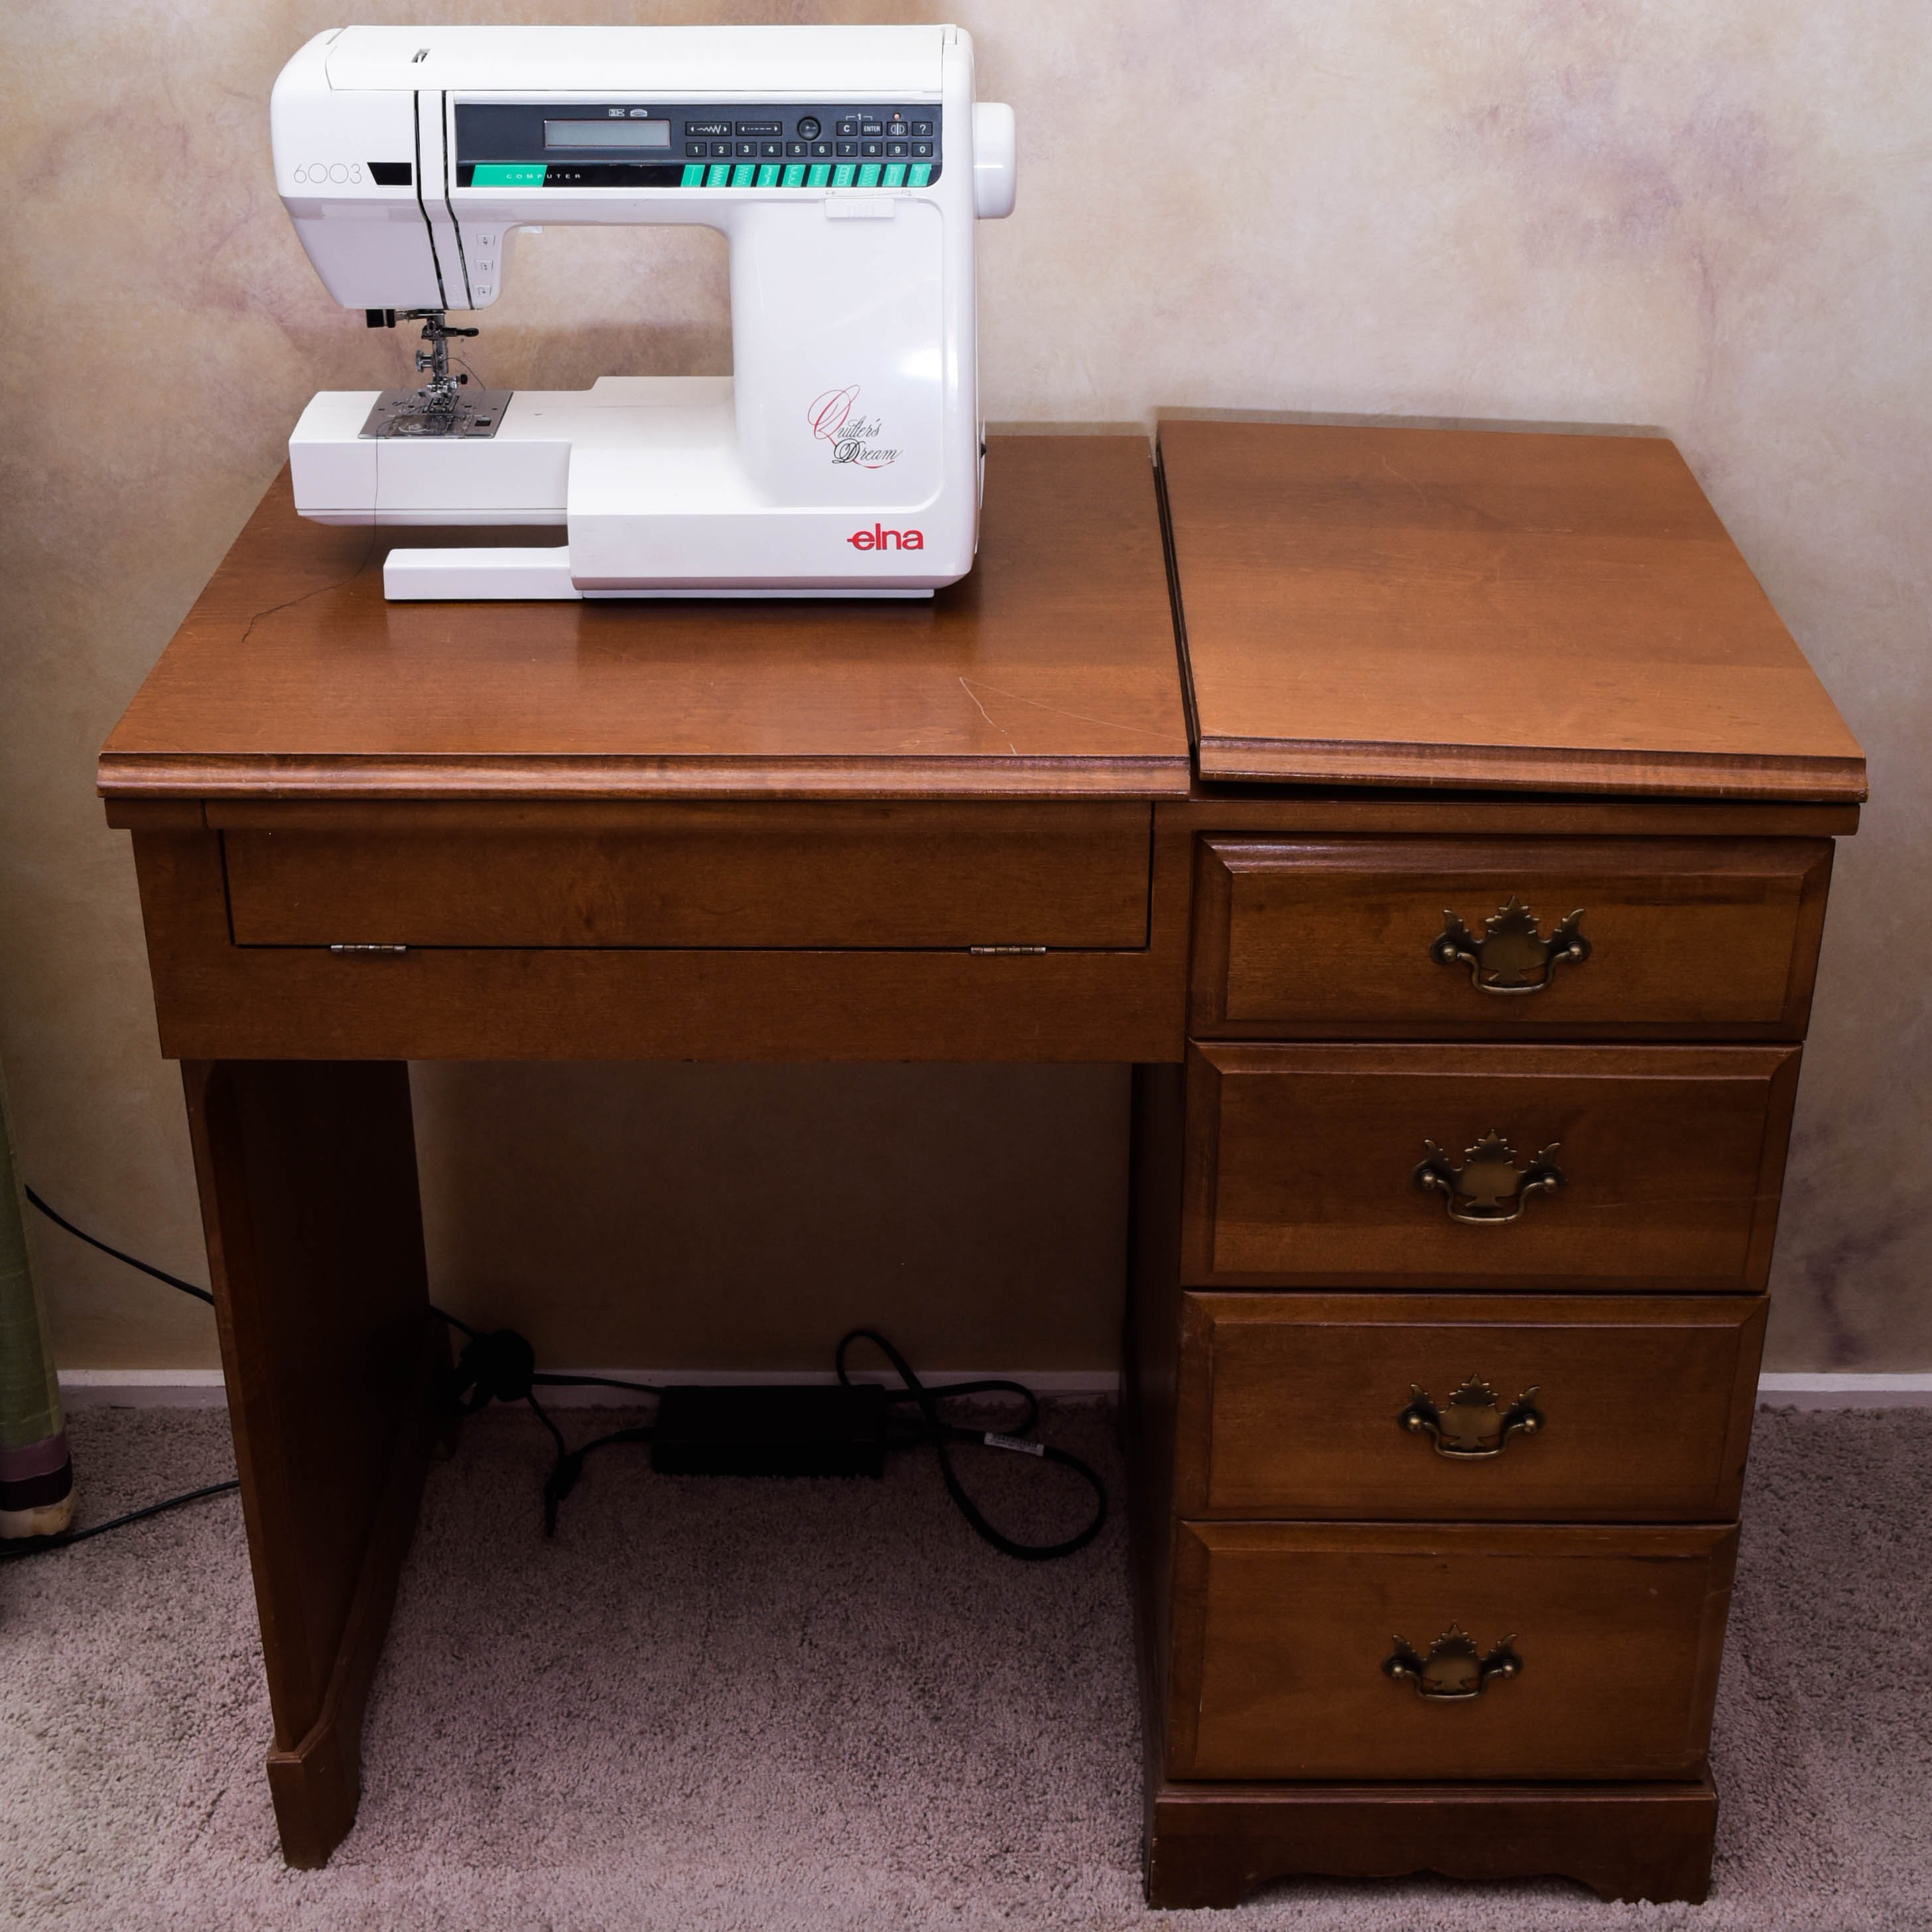 Elna 6003 Sewing Machine with Cabinet